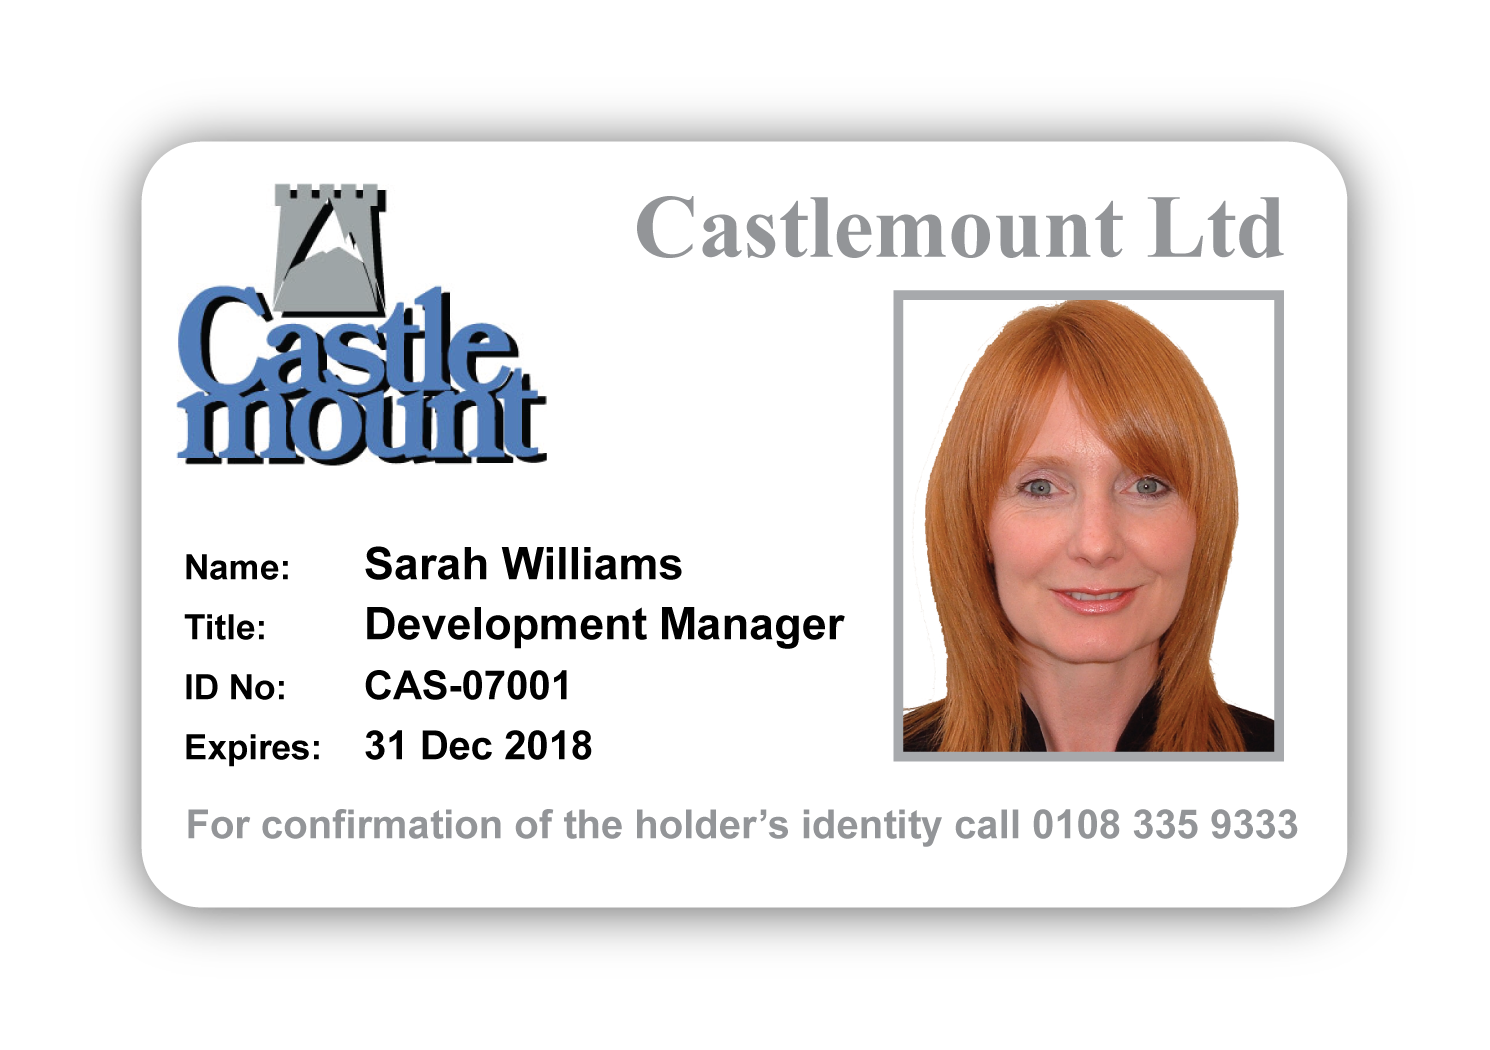 Sample ID Card with Castlemount Logo